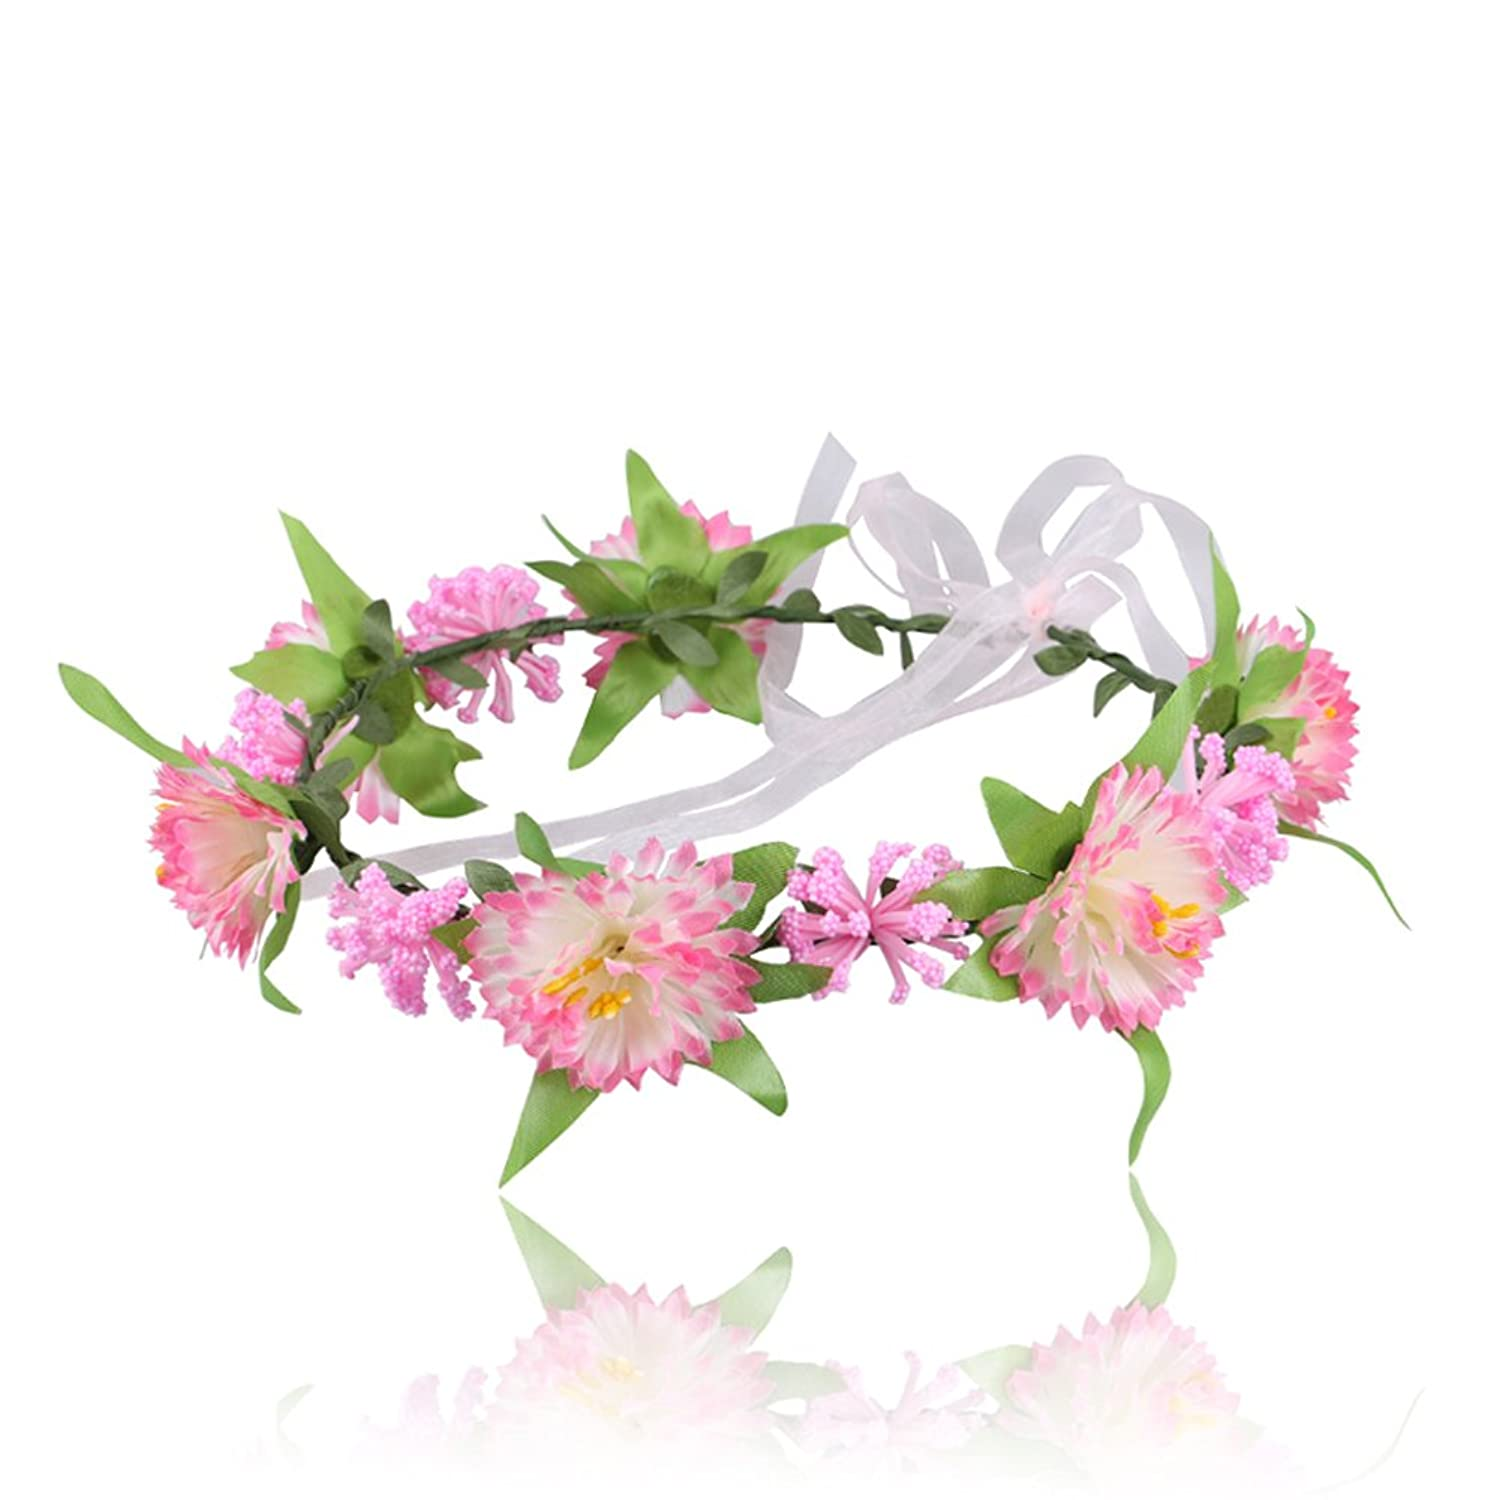 LD DRESS The stars Wreath Headband Crown Floral Garland for Festival Wedding